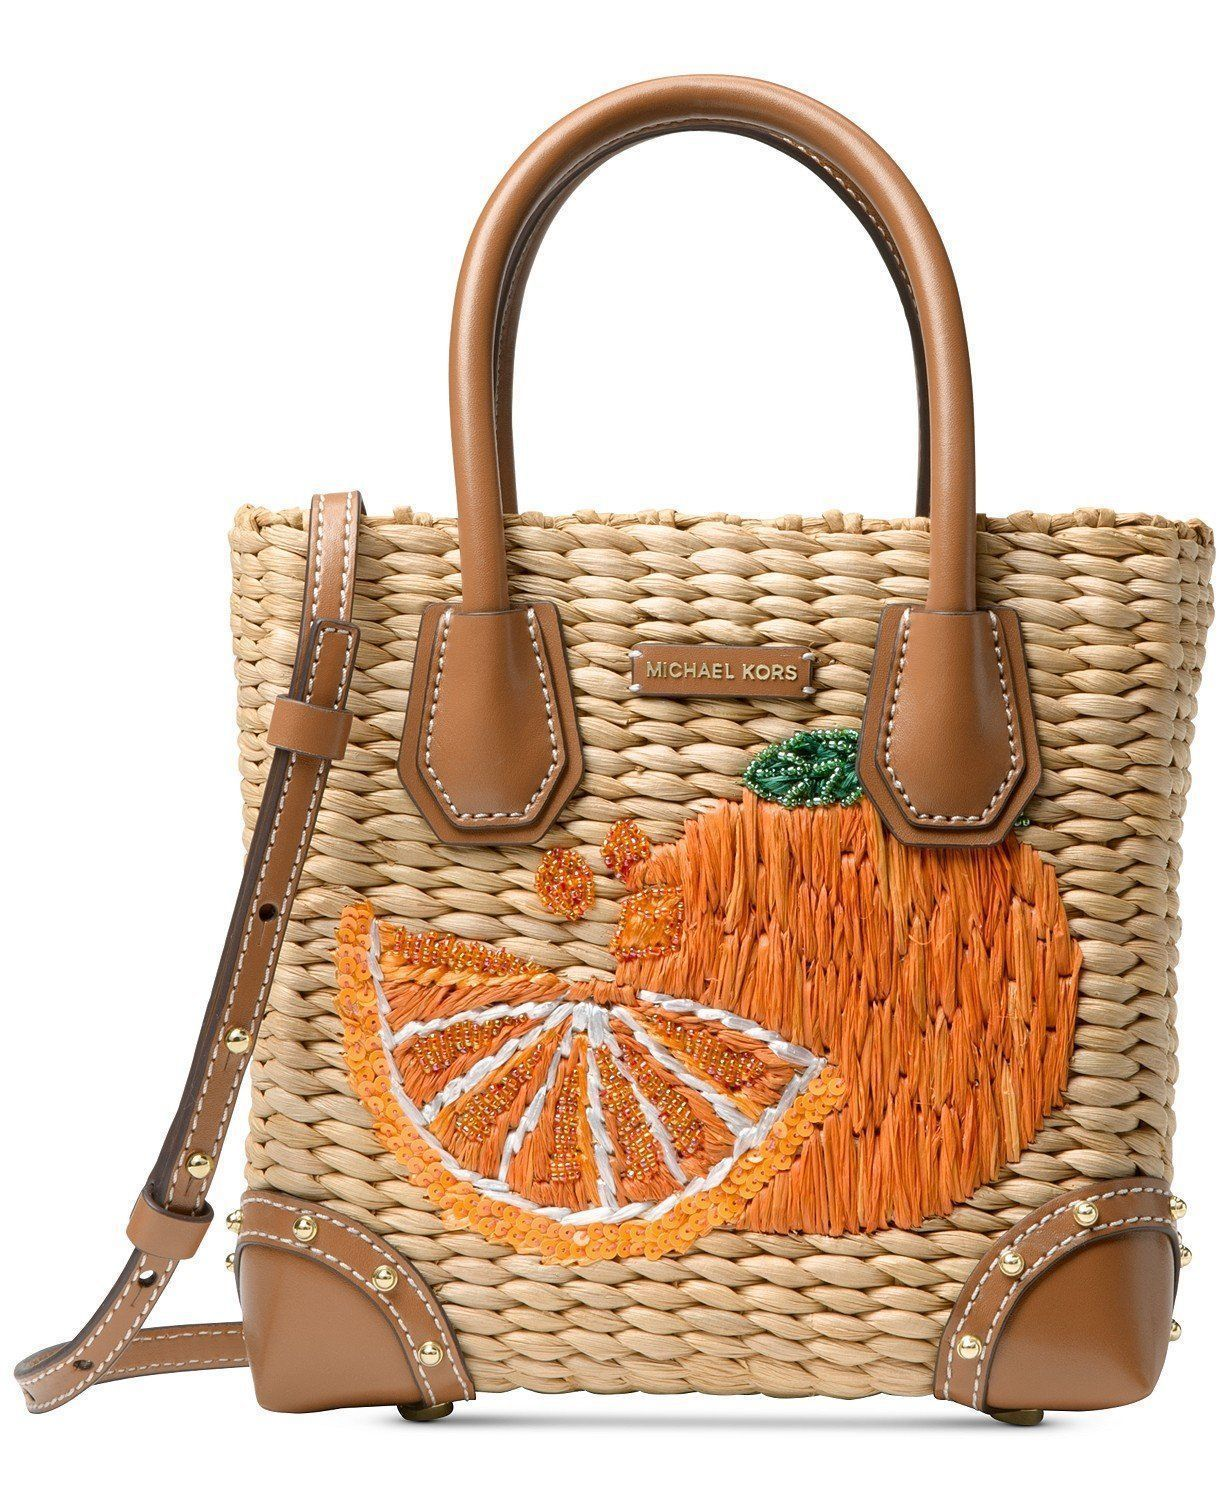 dccb3c7bf0d9 Michael kors malibu medium straw messenger bag natural tangerine 3